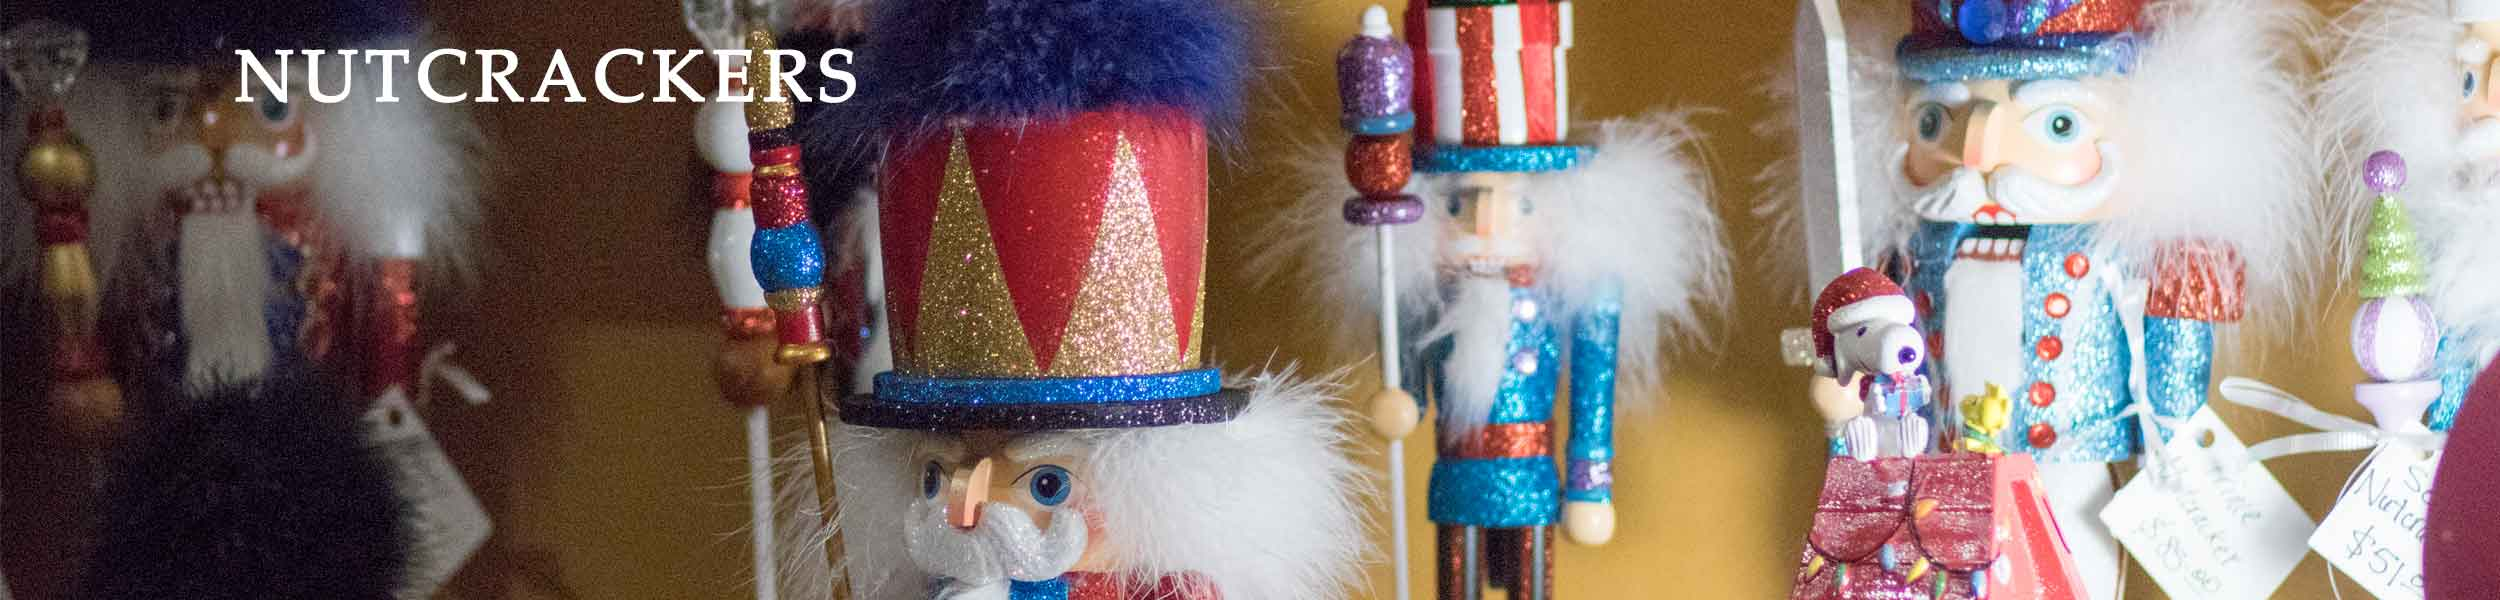 Galveston Nutcracker Collection for sale